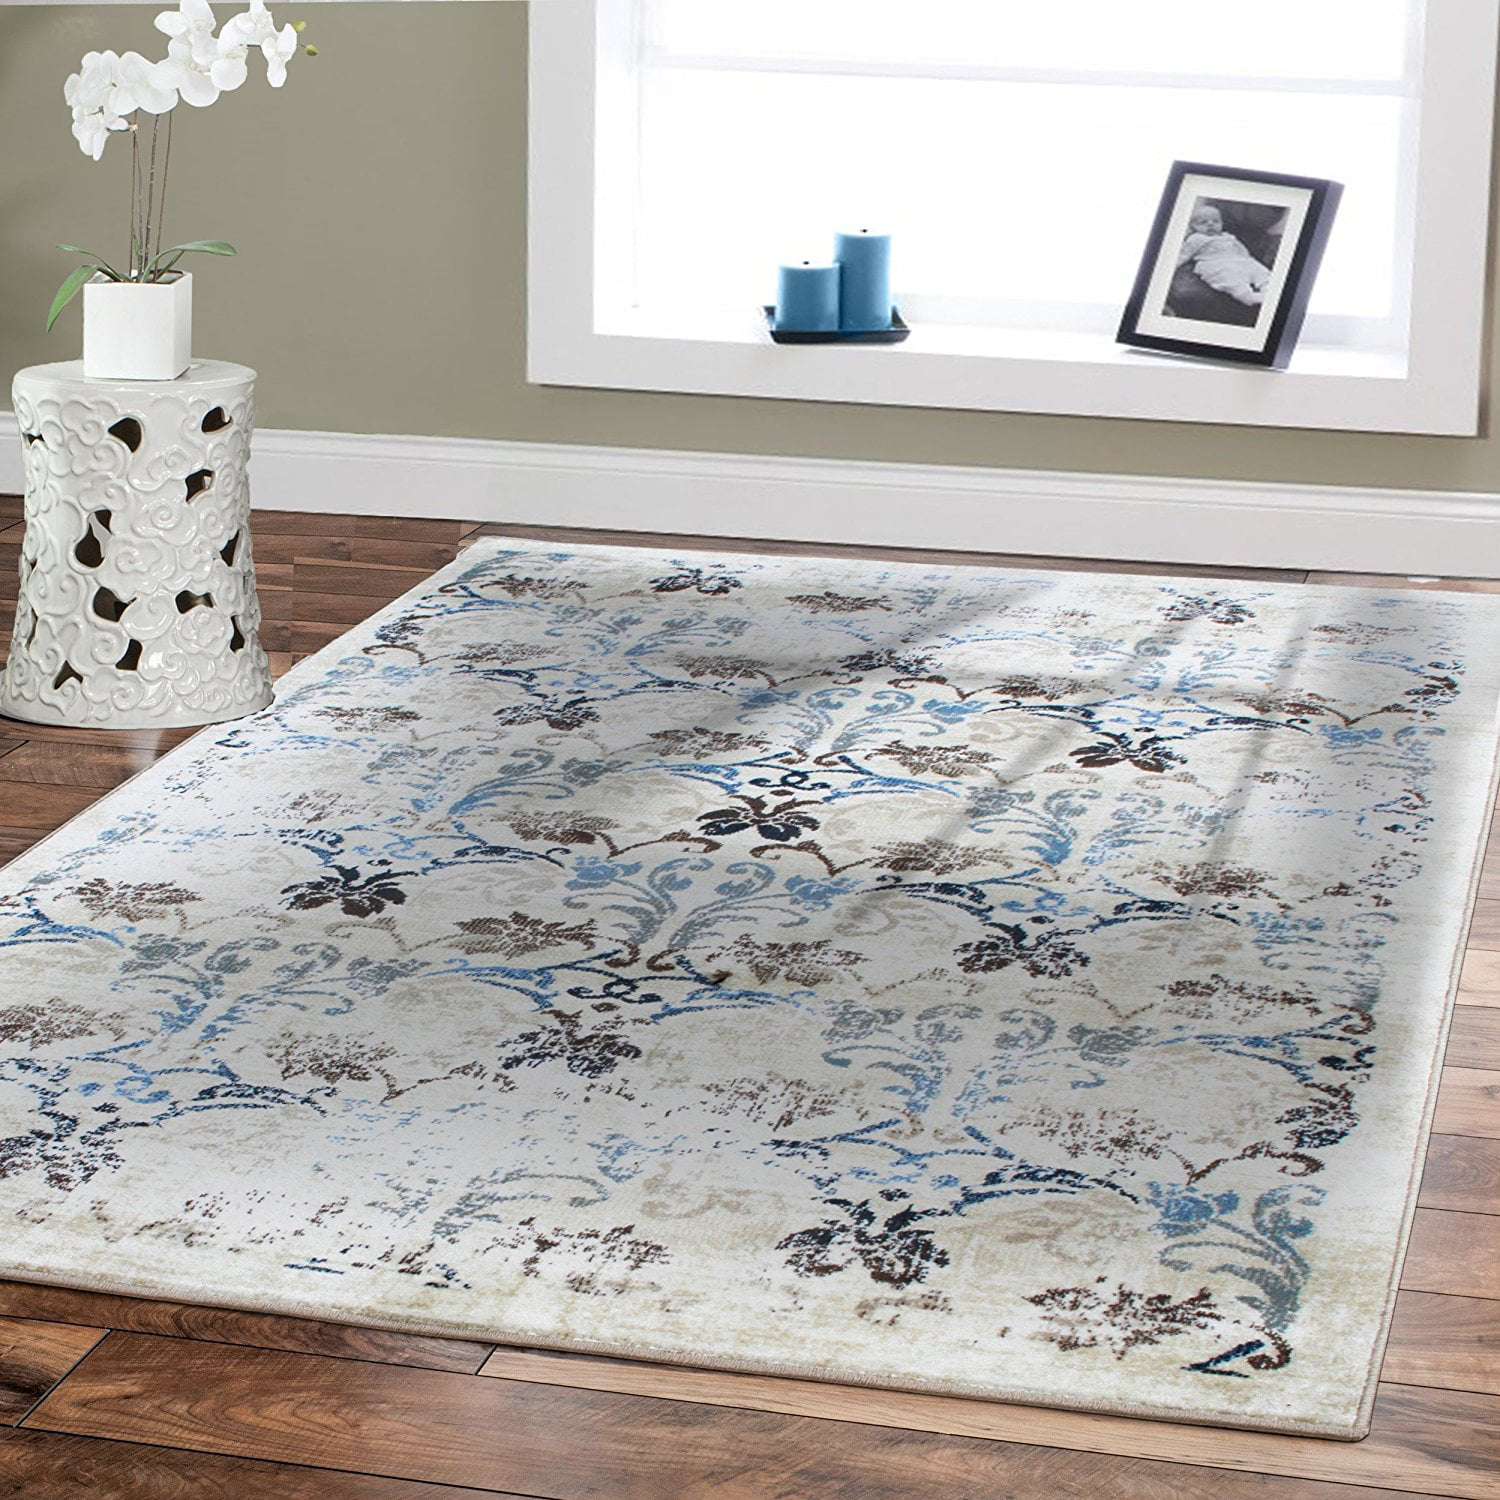 Premium Rugs Dining Room Rug for Under the Table 8 by 10 Floor Rugs  Clearance Cream 8x11 Distressed Rugs 8x10 Area Rugs on Clearance -  Walmart.com